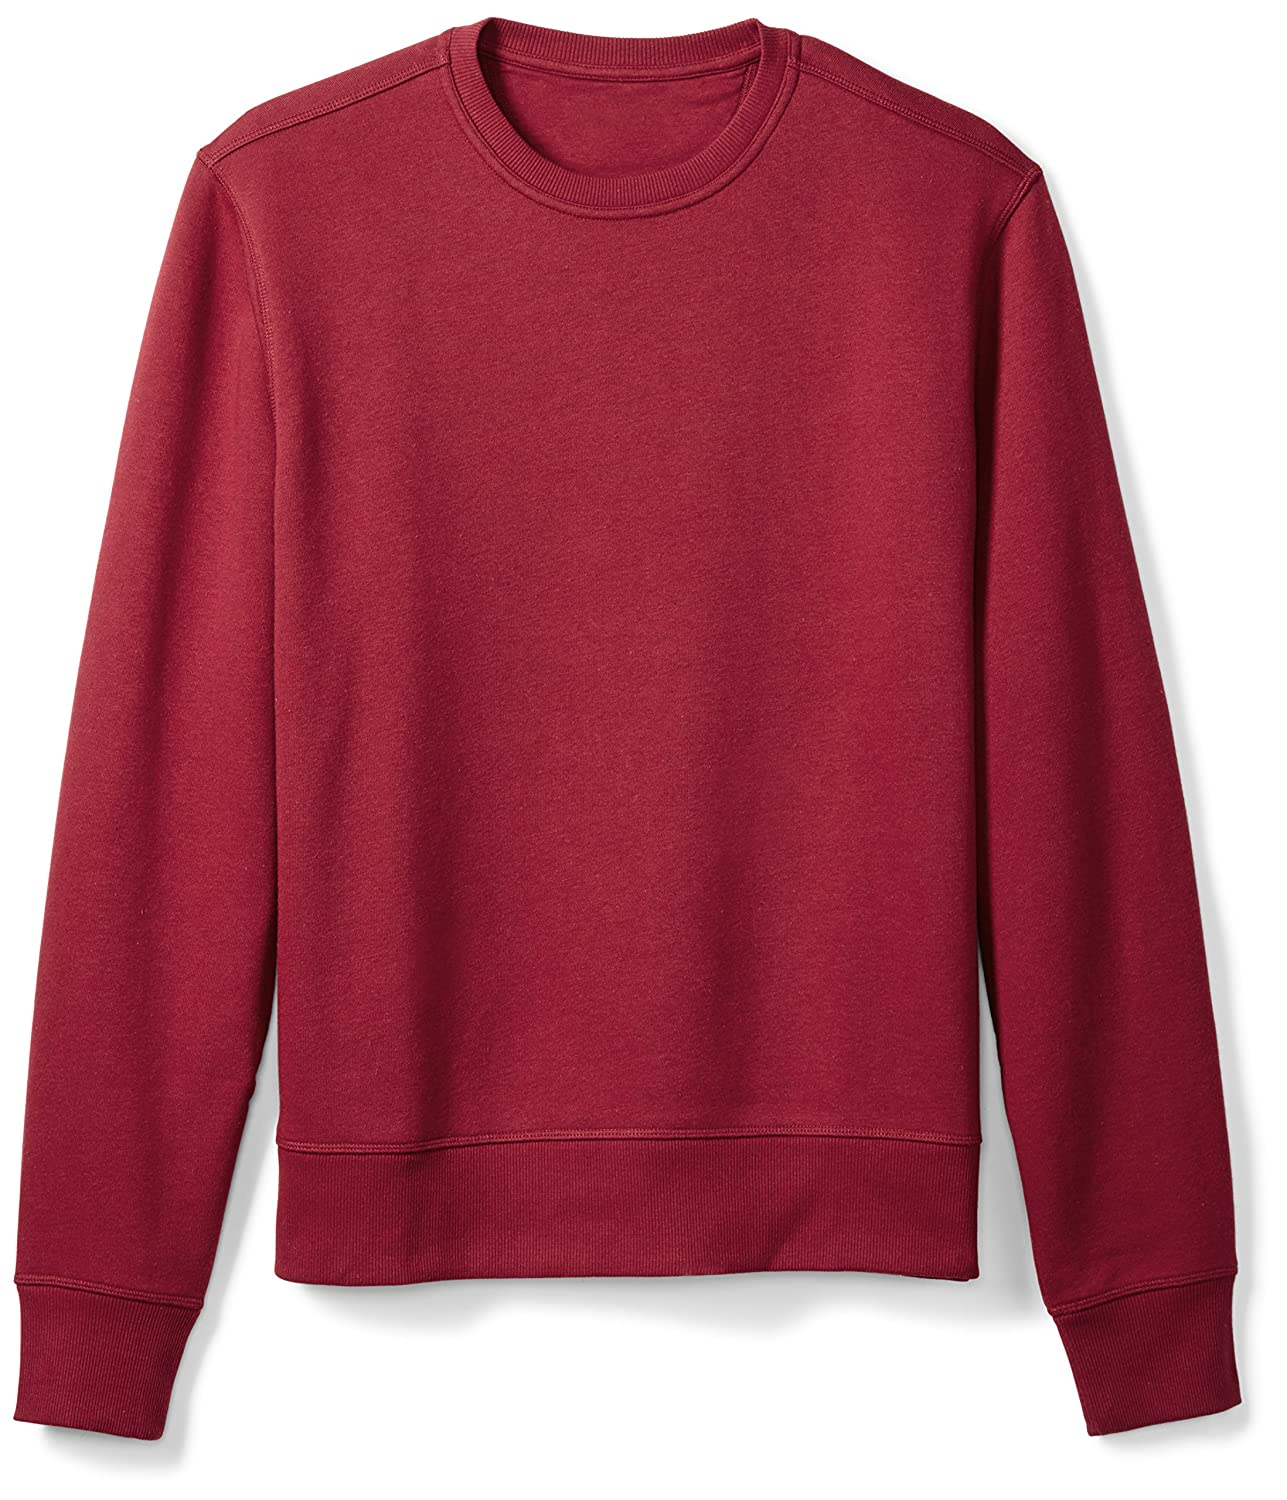 Amazon Essentials Men's Crewneck Fleece Sweatshirt F17AE50000